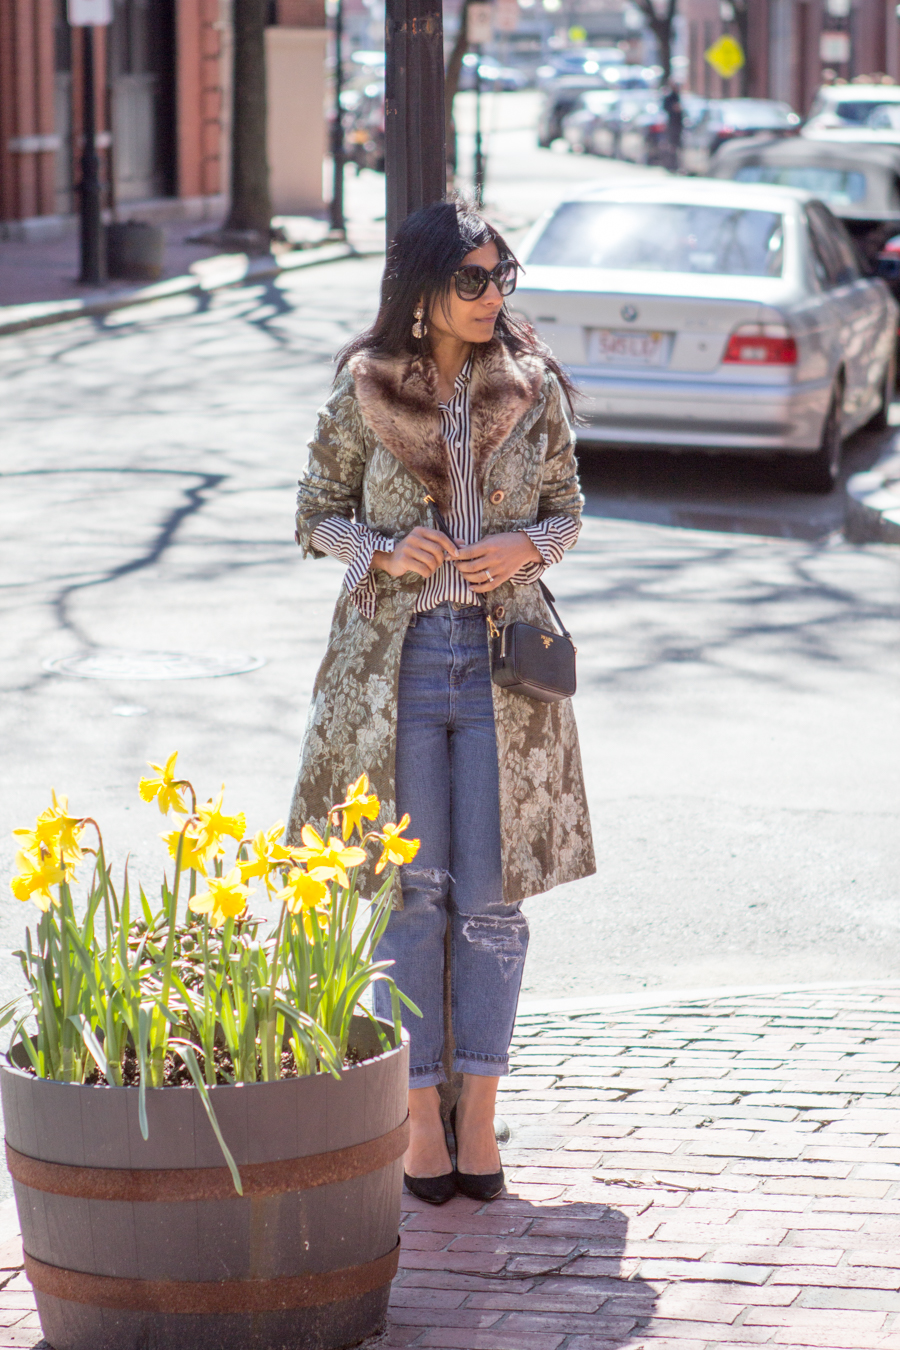 floral jacket, jacquard coat, statement coat, spring style, florals, green coat, mom jeans, black suede pumps, under $100, striped shirt, striped blouse, black and white stripes, eclectic, feminine style, easy glam, petite fashion, boston street style